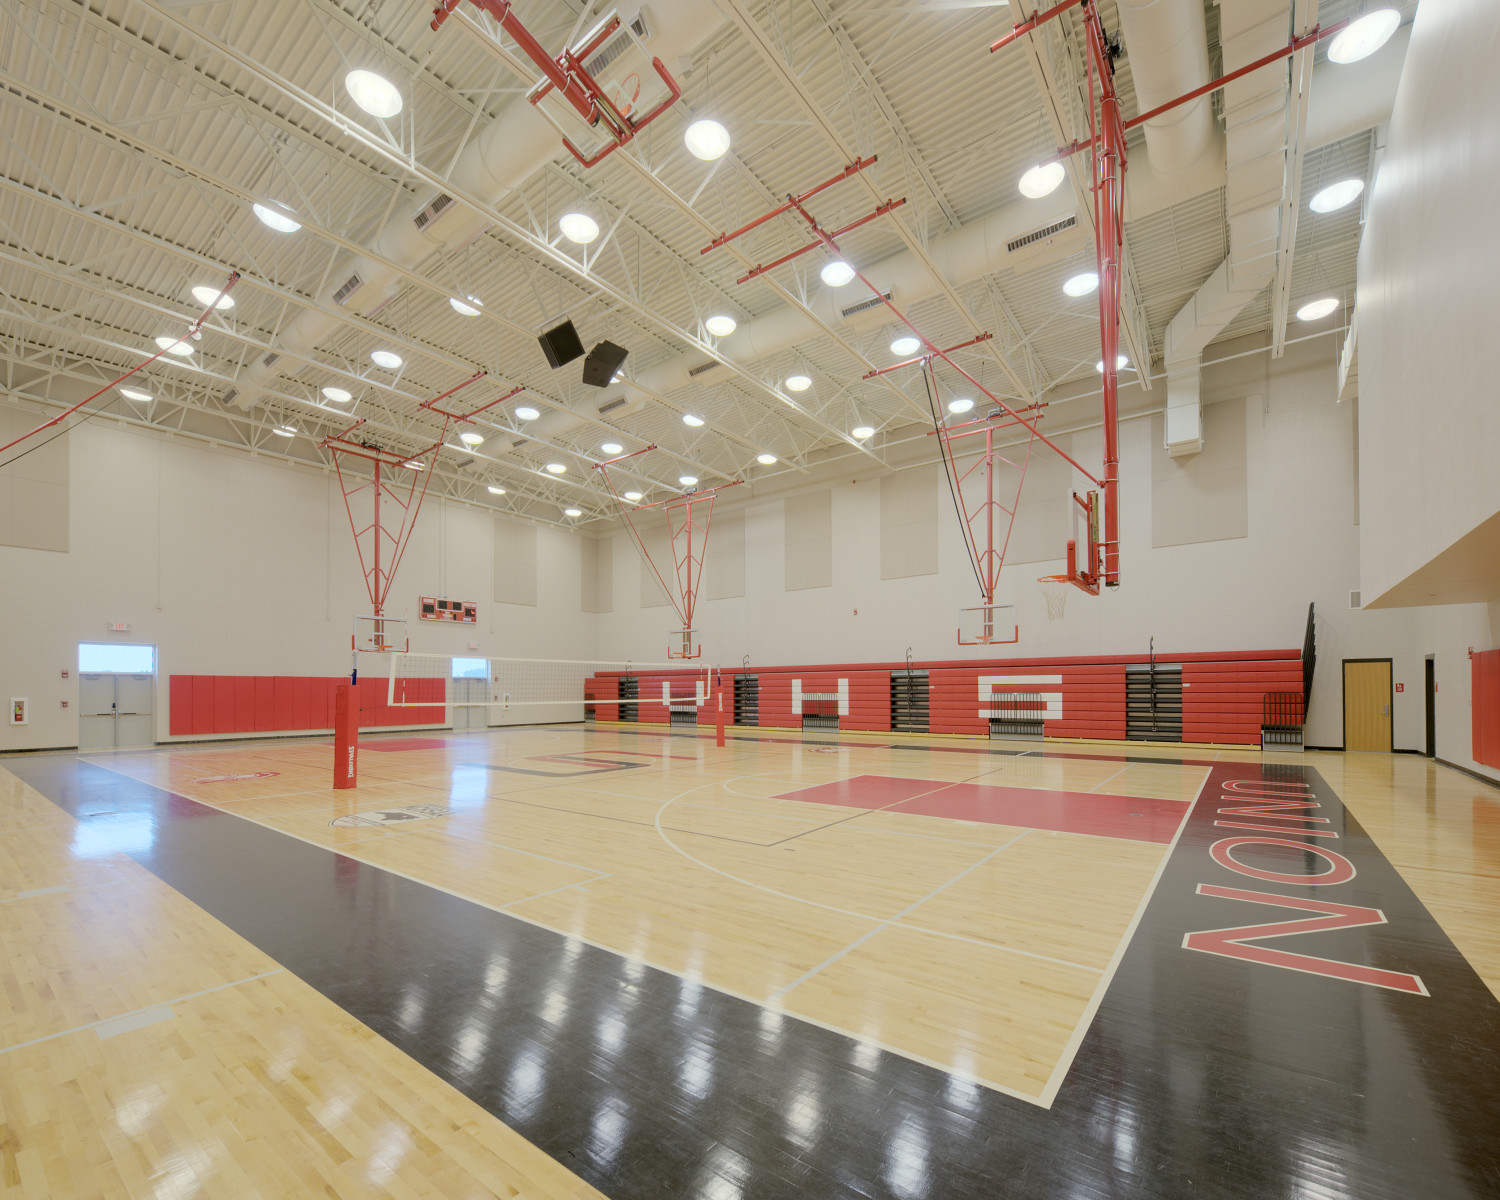 Classroom Layouts ~ Union and midway high schools barnhill contracting company